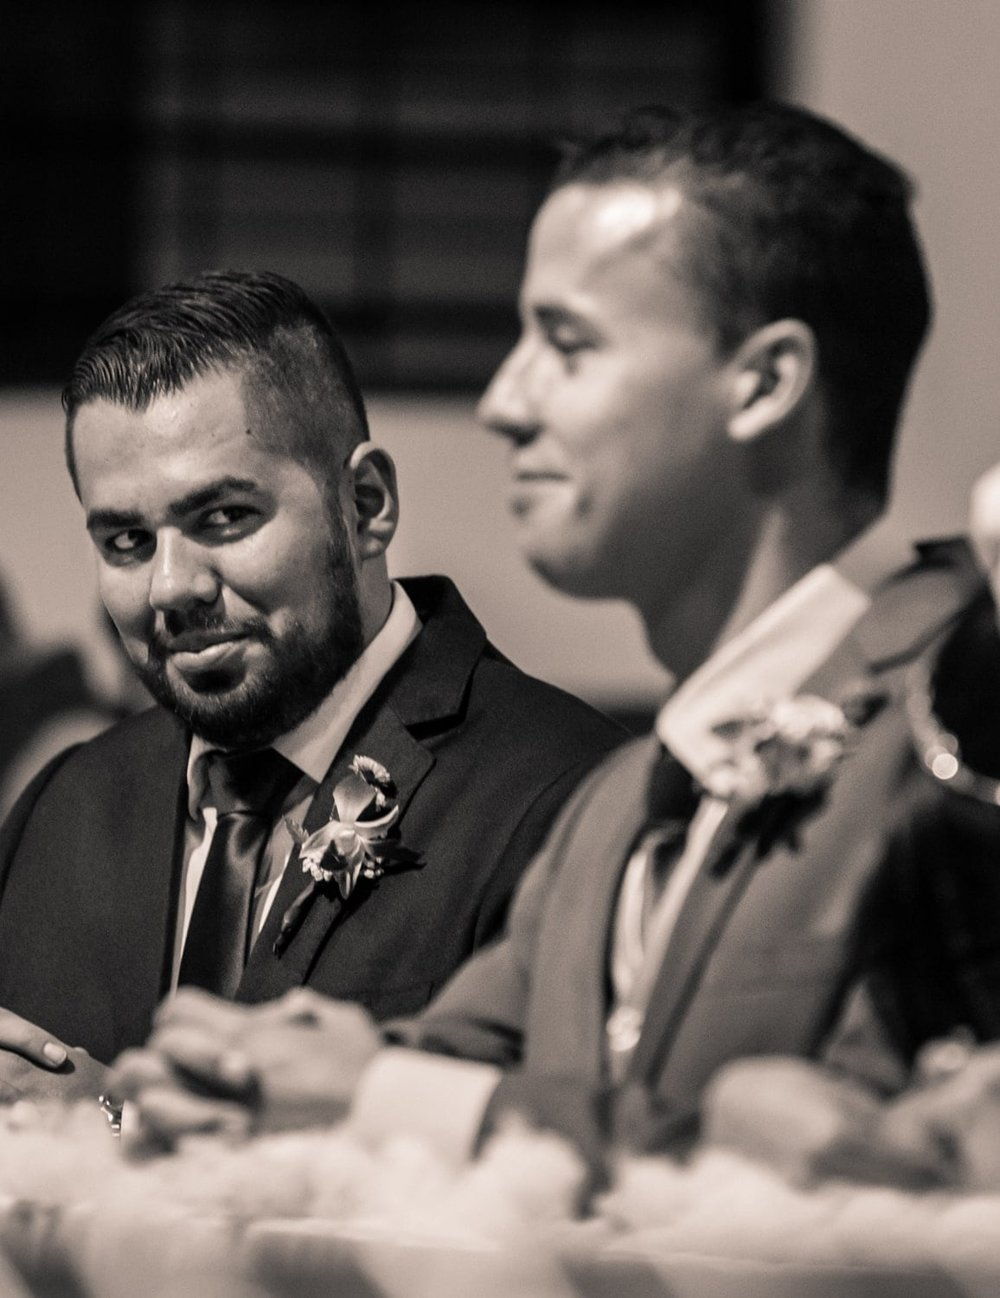 Groomsman and groom have a fun moment during wedding ceremony.